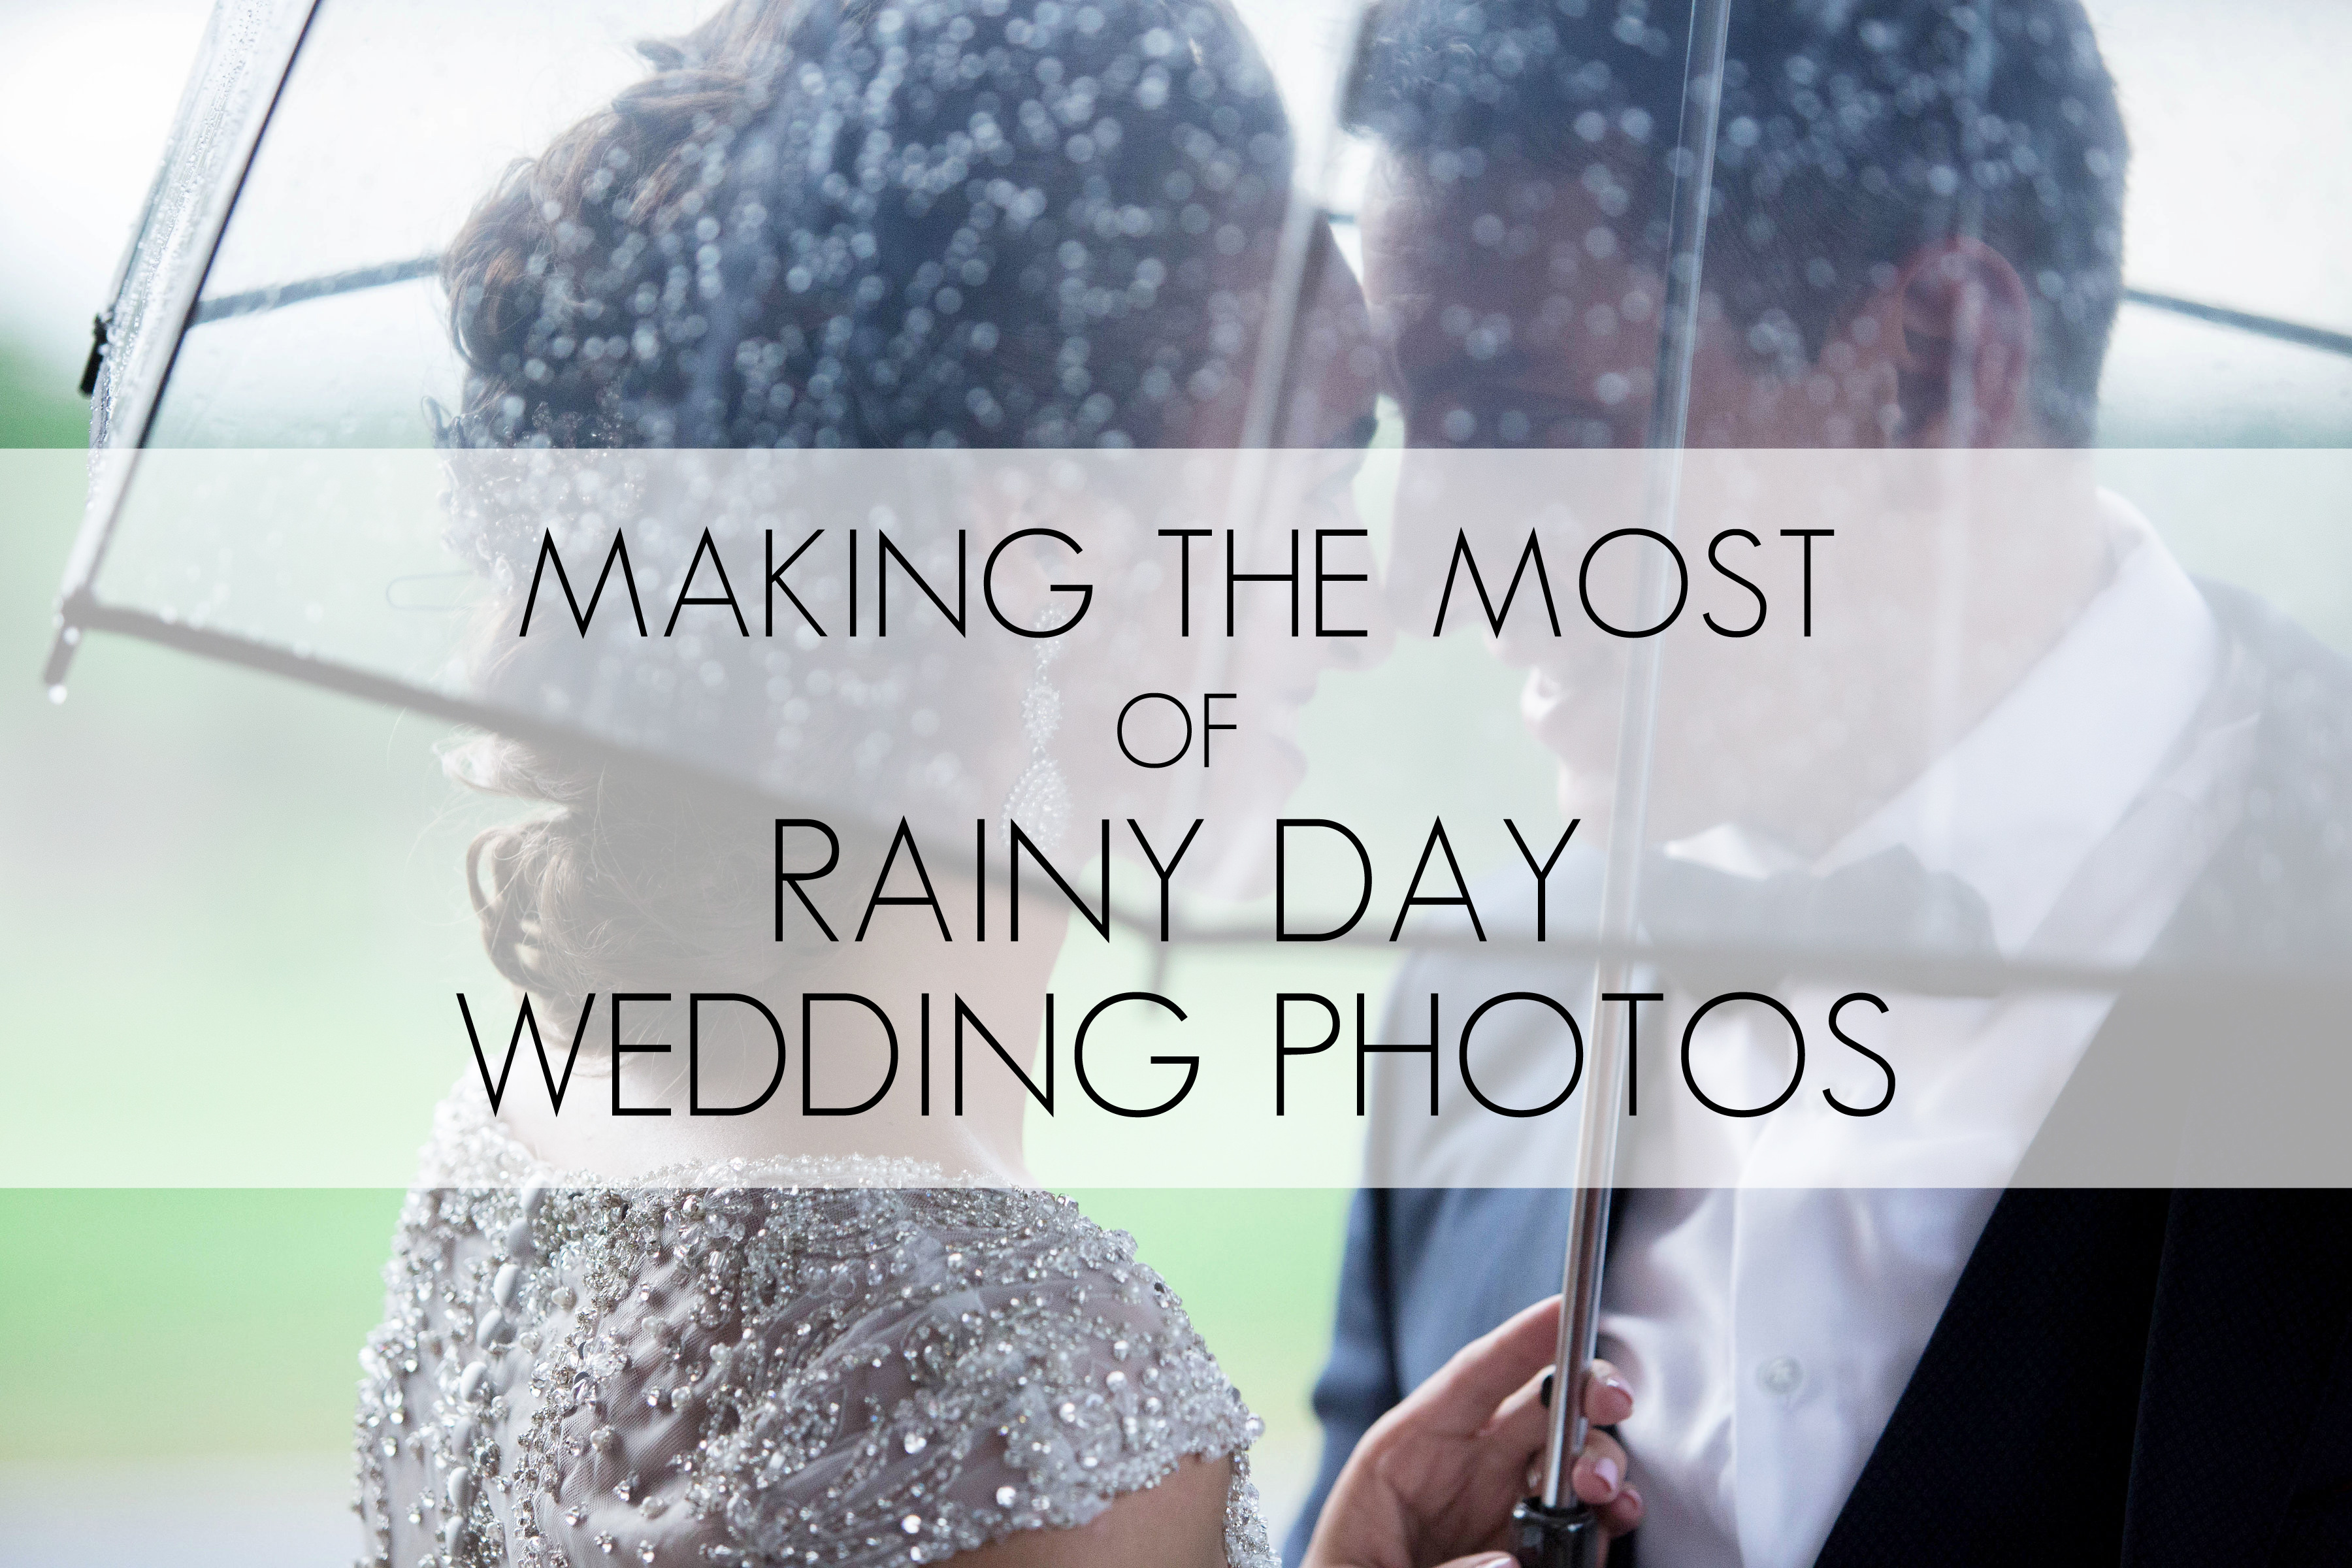 SEG_Rainy Day Wedding Photos 5